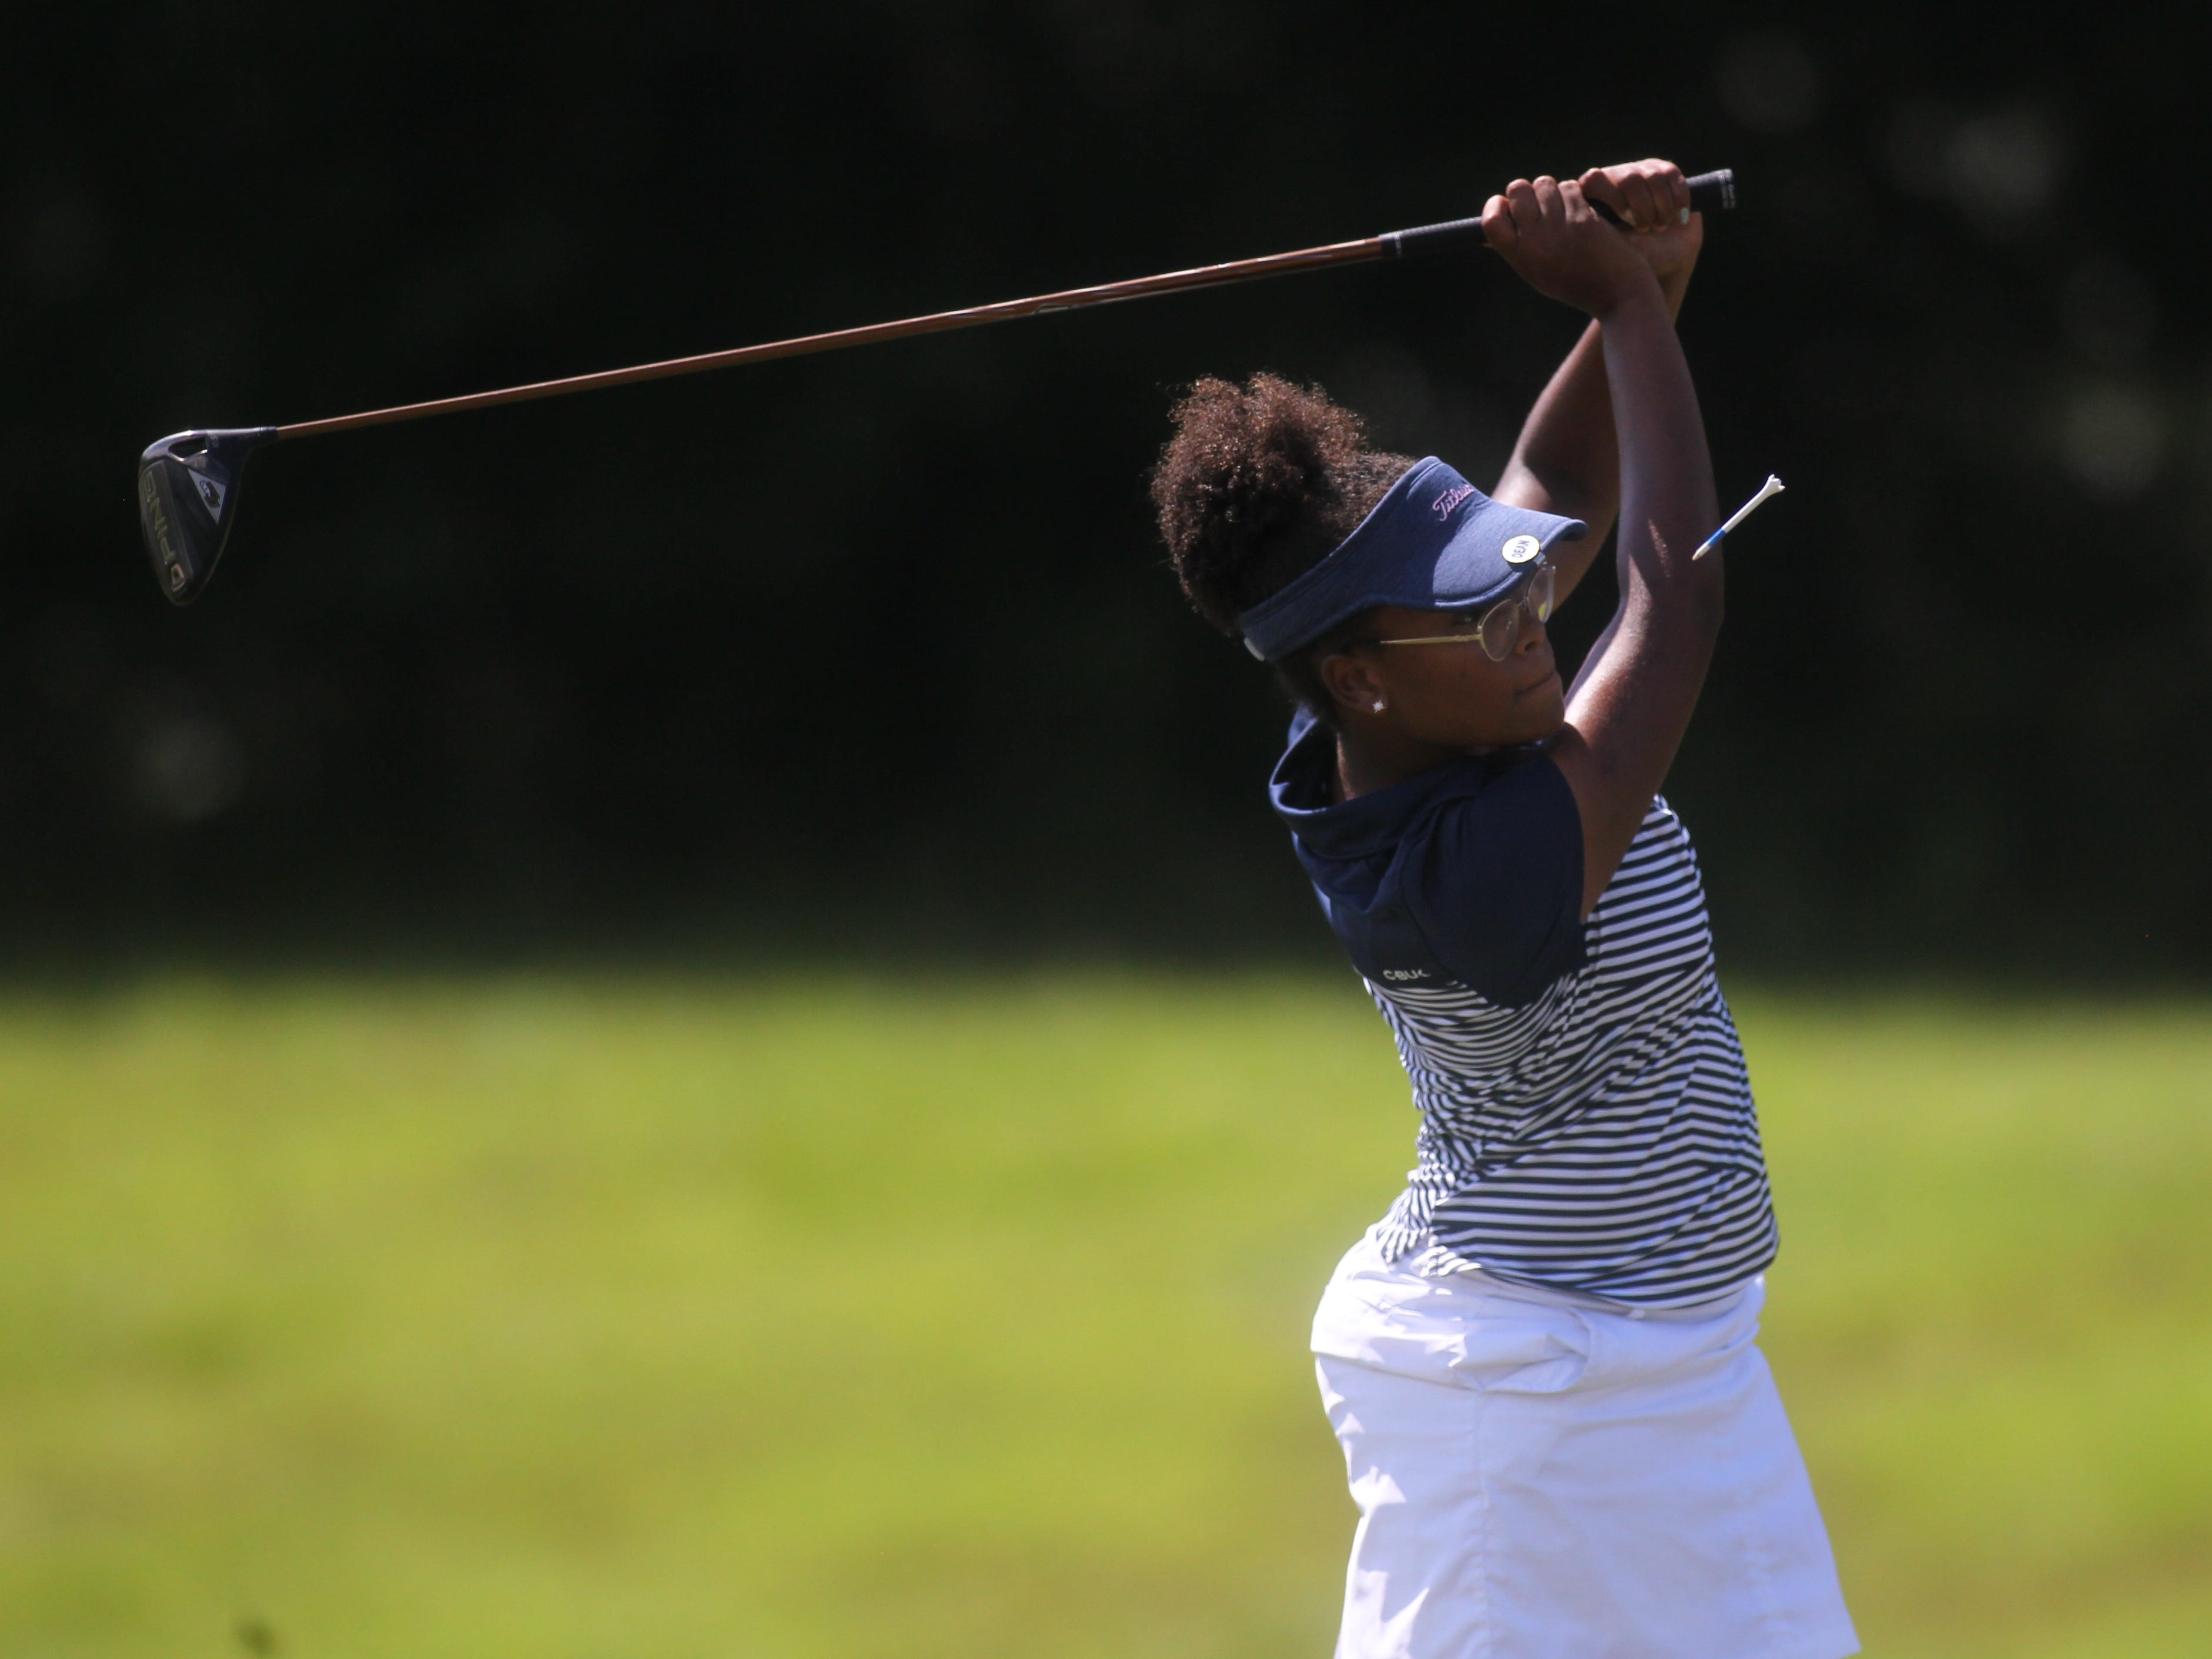 Maclay's Annika Dean watches a tee shot (literally) during a round at Southwood Golf Club.